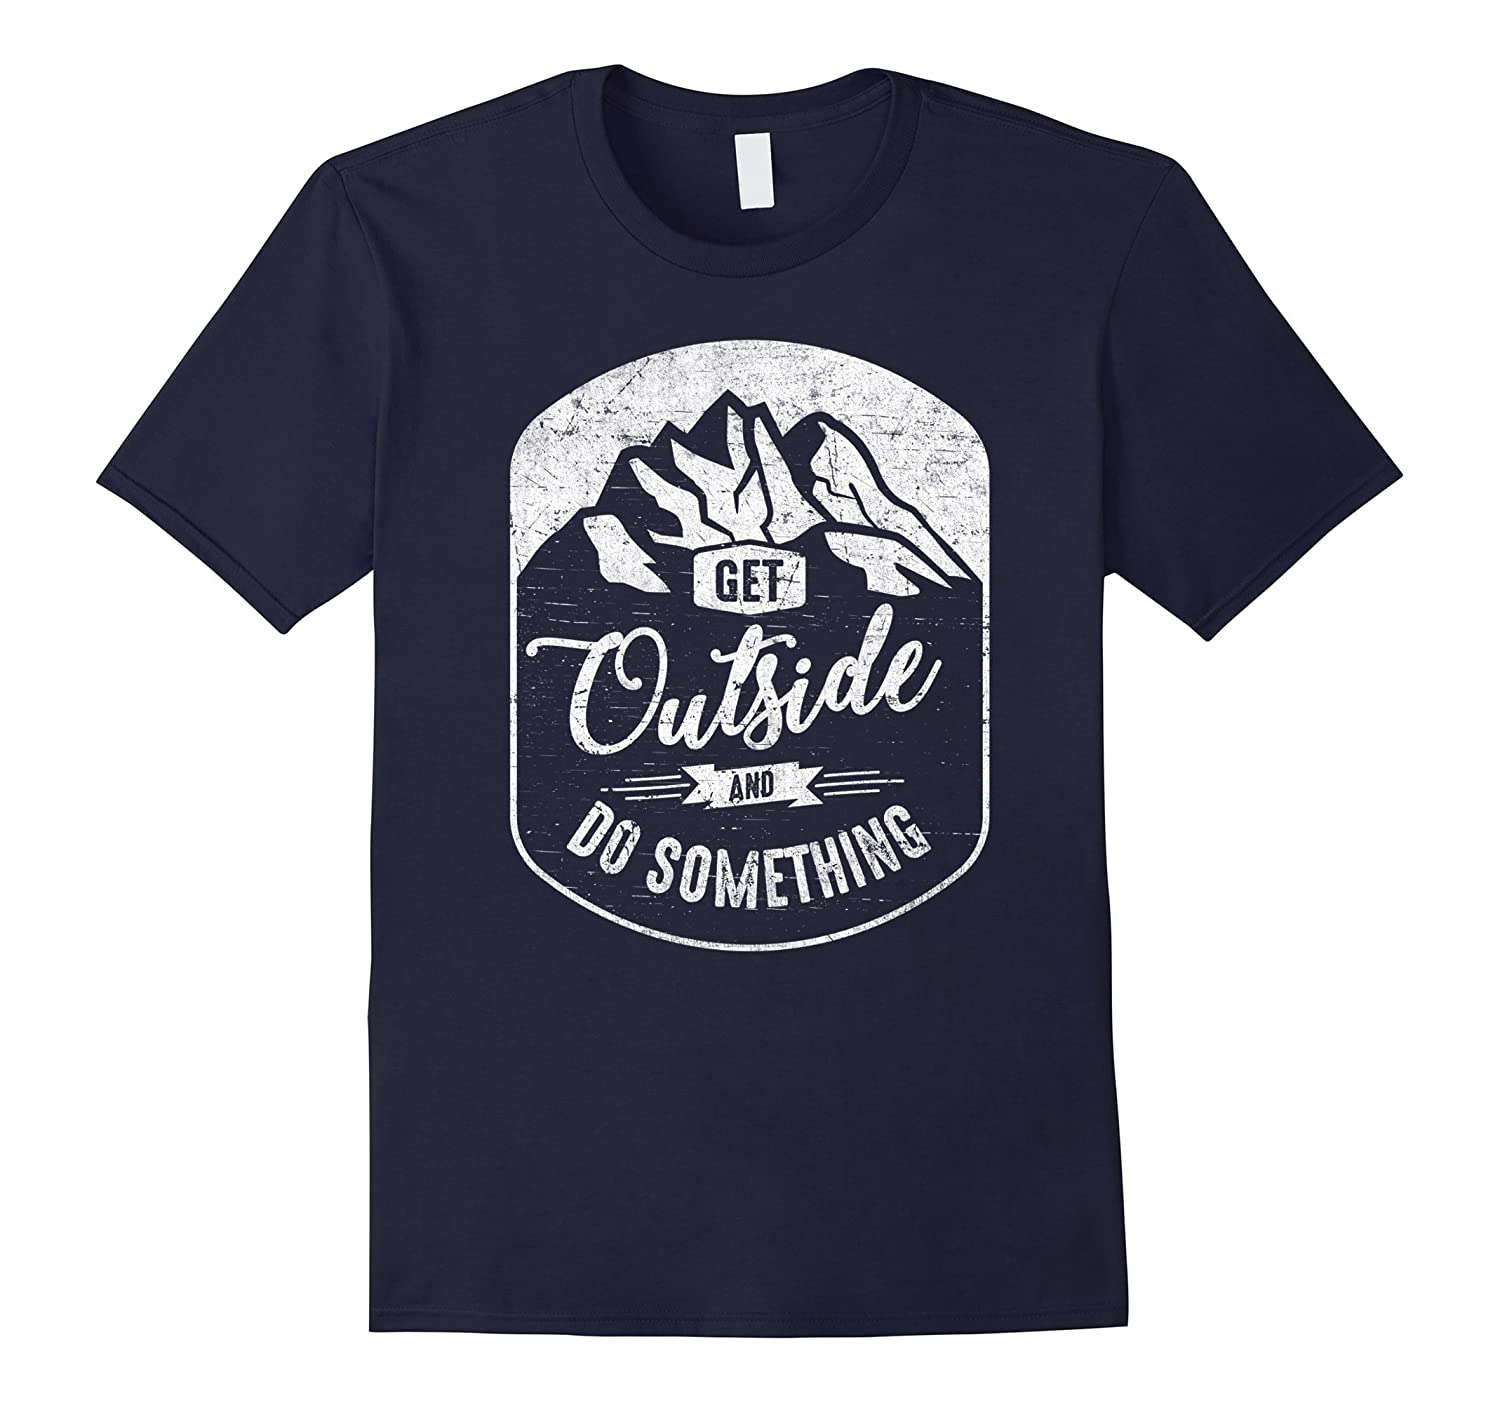 Get Outside Do Something T-shirt Scouting National Parks-TD